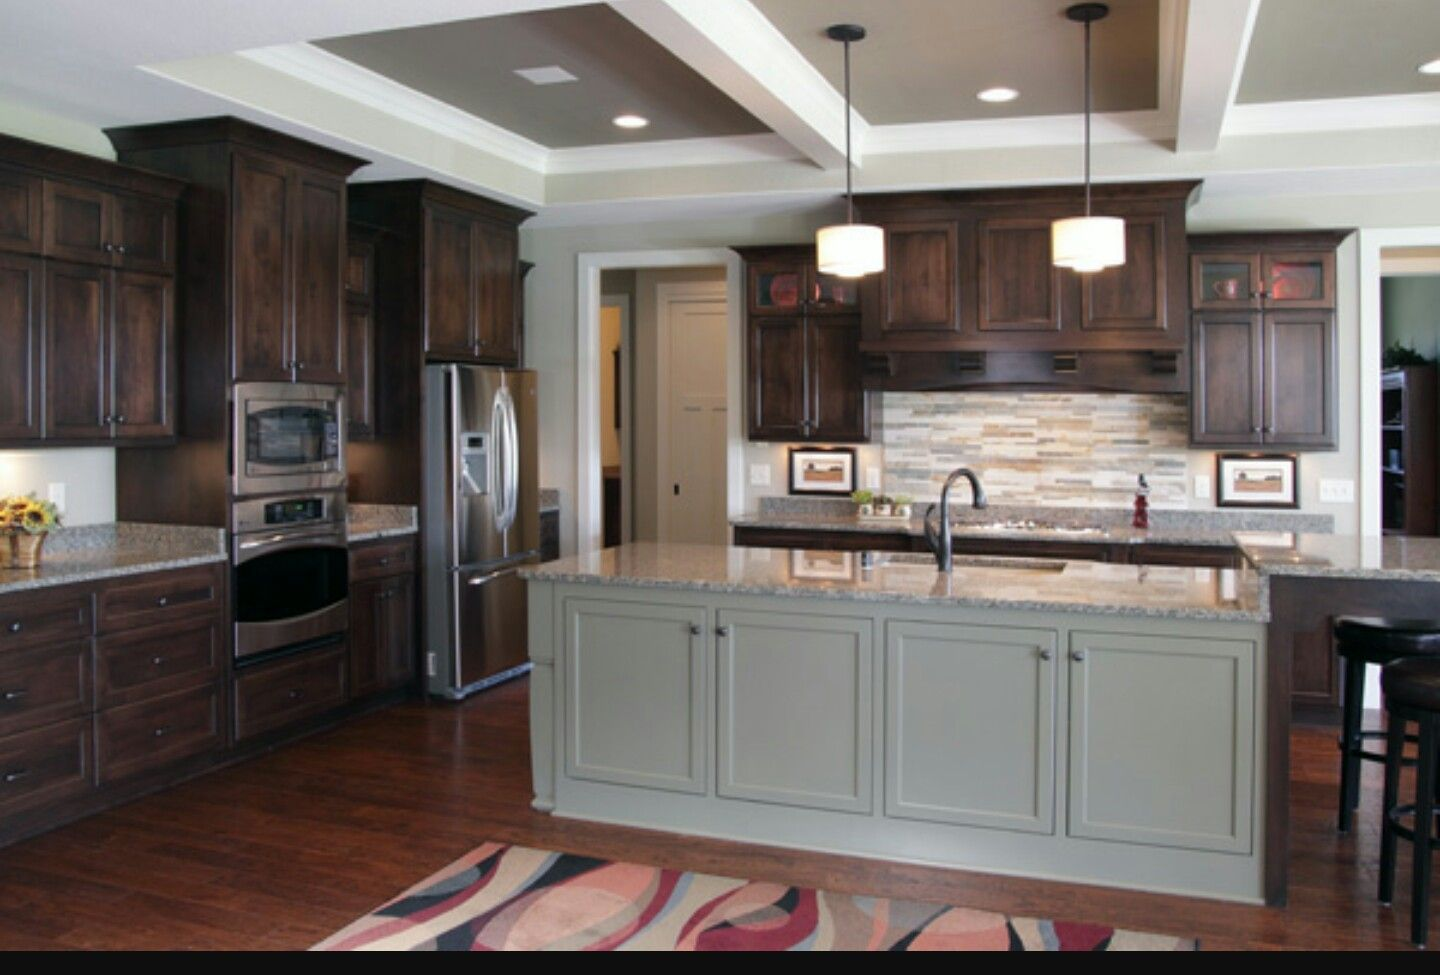 5 Top Image Brown Gray Kitchen Cabinets Dark Brown Kitchen Cabinets Dark Brown Cabinets Brown Kitchen Cabinets